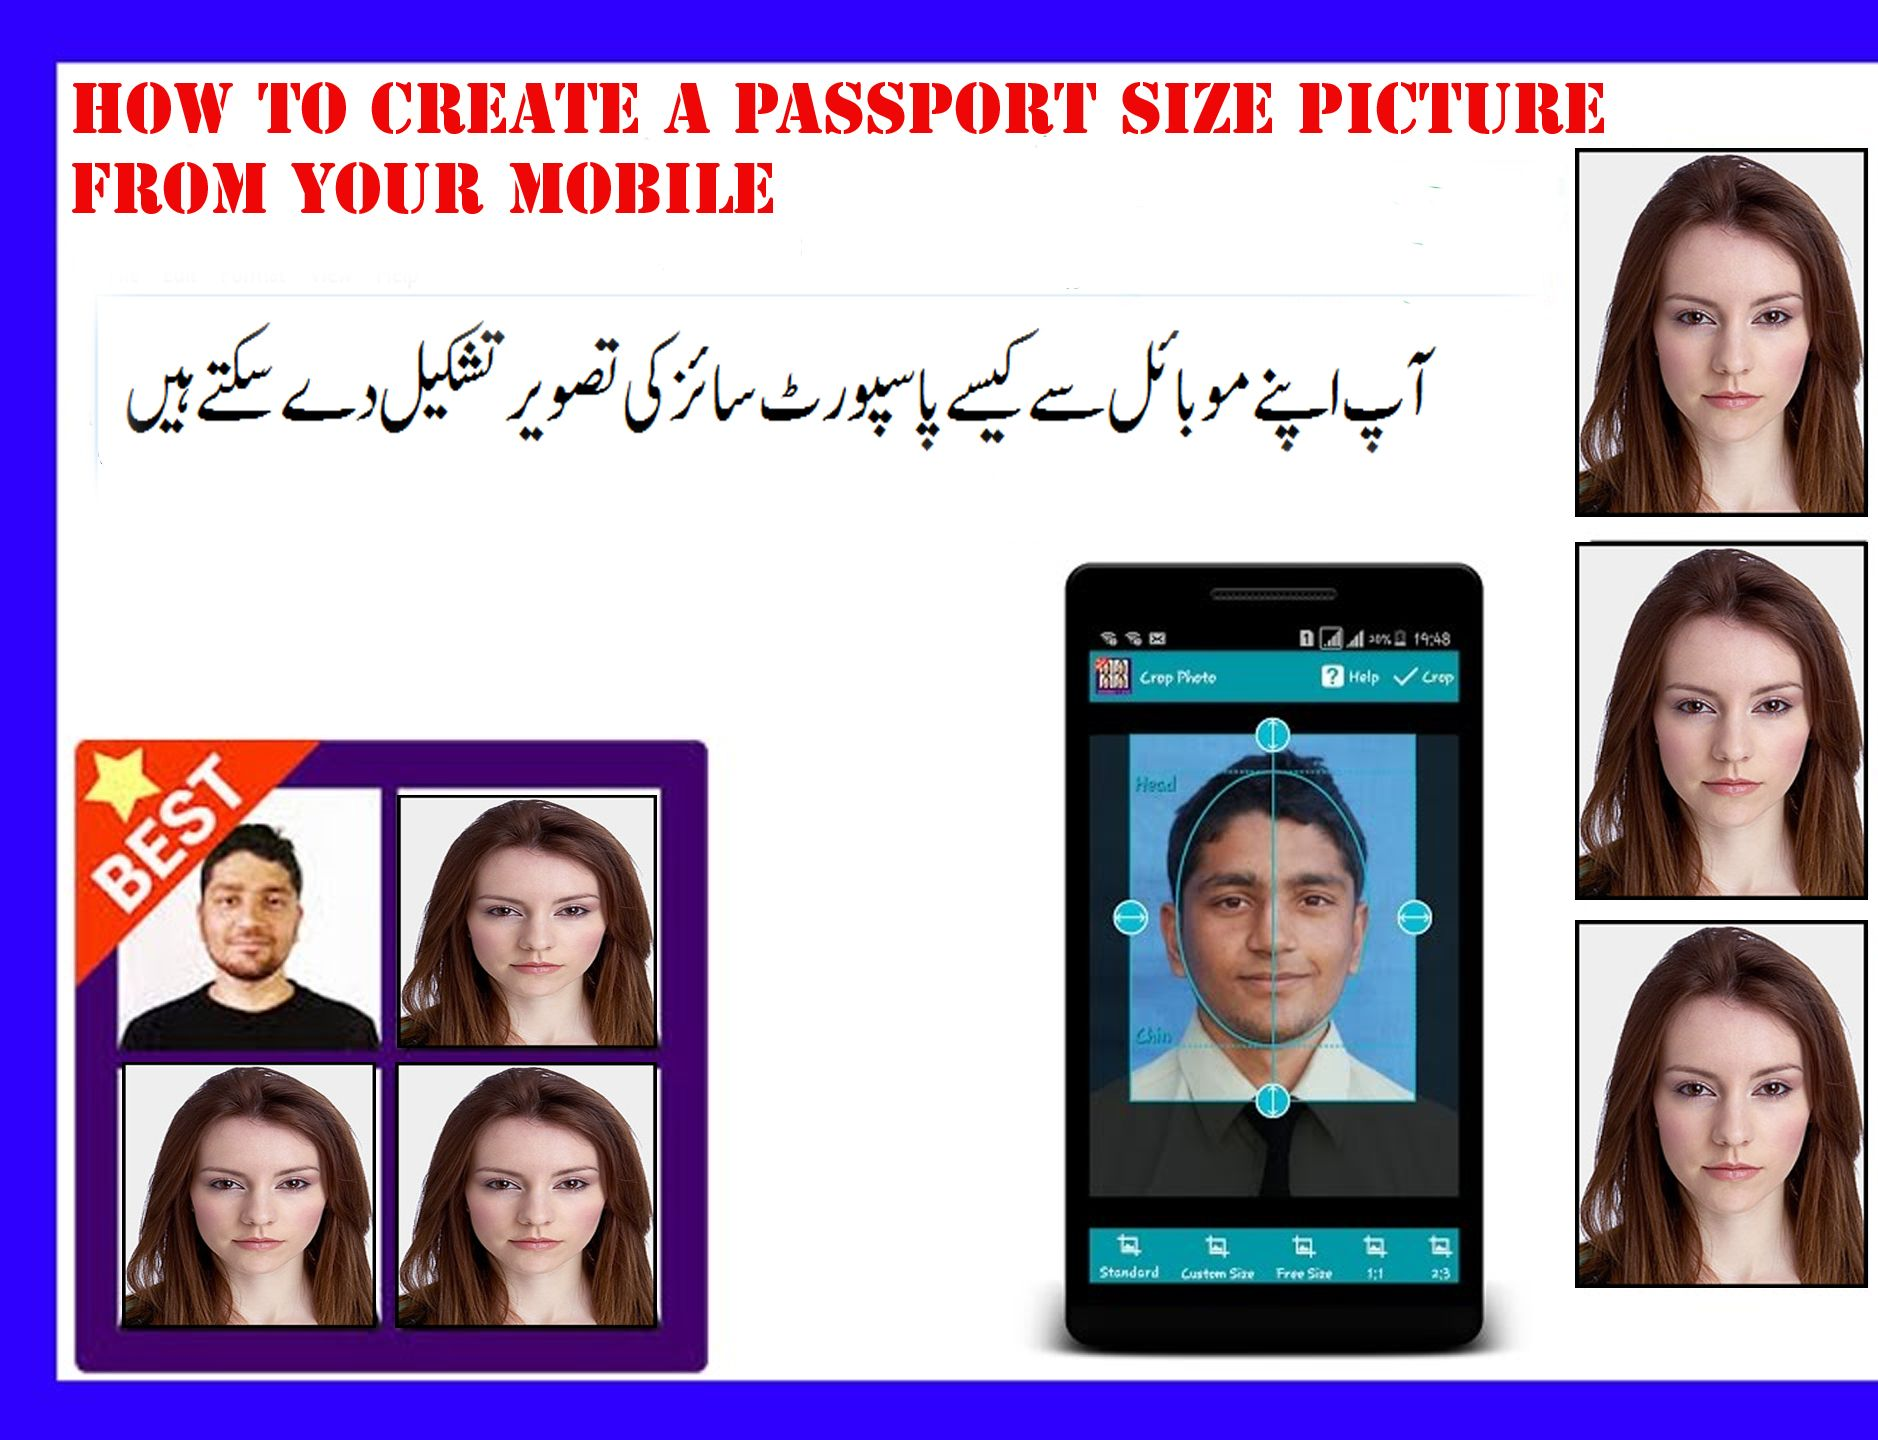 How to Take a Passport Photo - Digital Trends